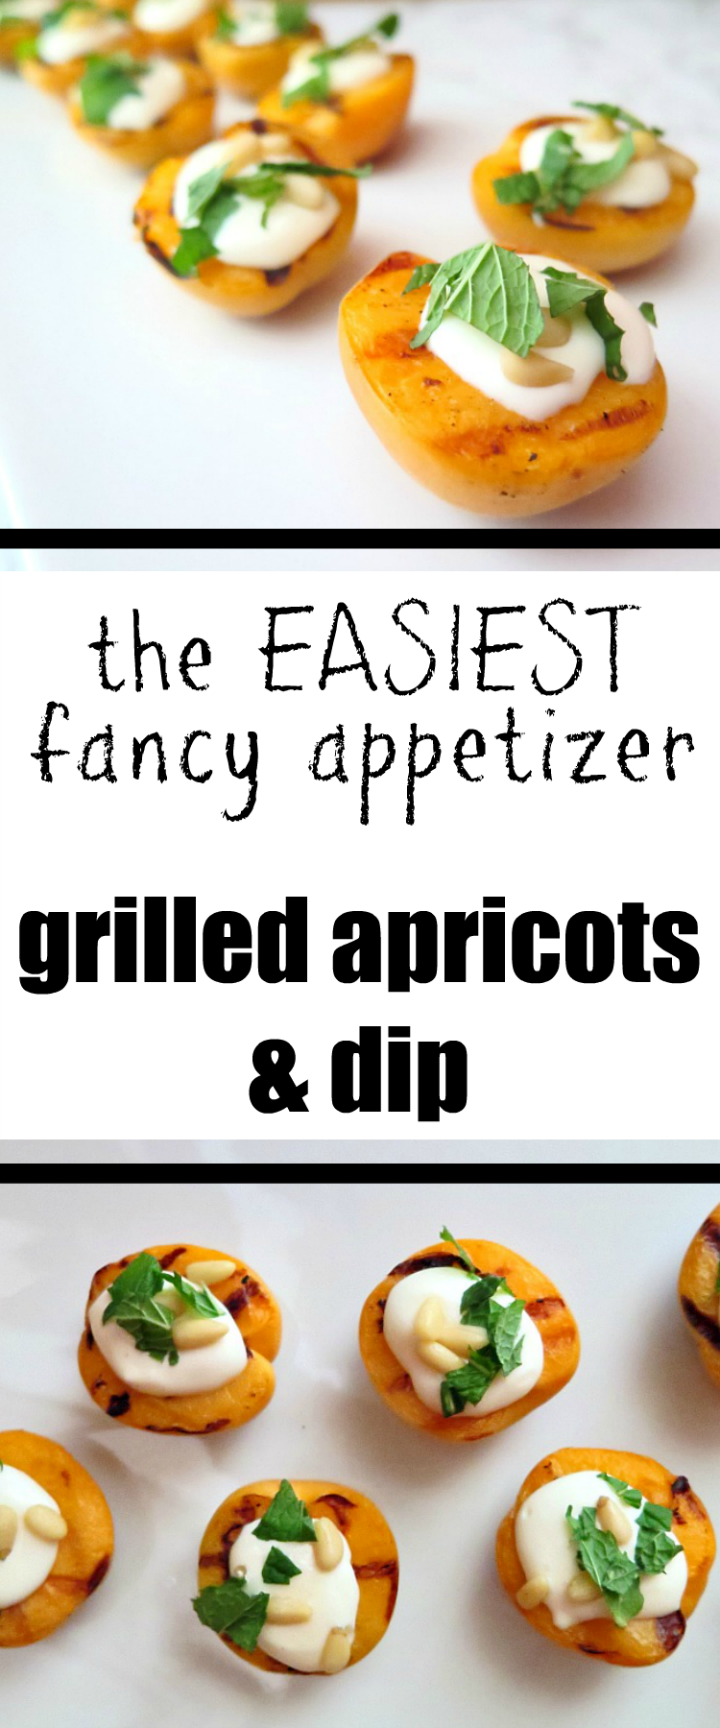 Make this recipe for your next fancy dinner or backyard bbq - grilled apricots & dip. Perfect for a casual summer night!